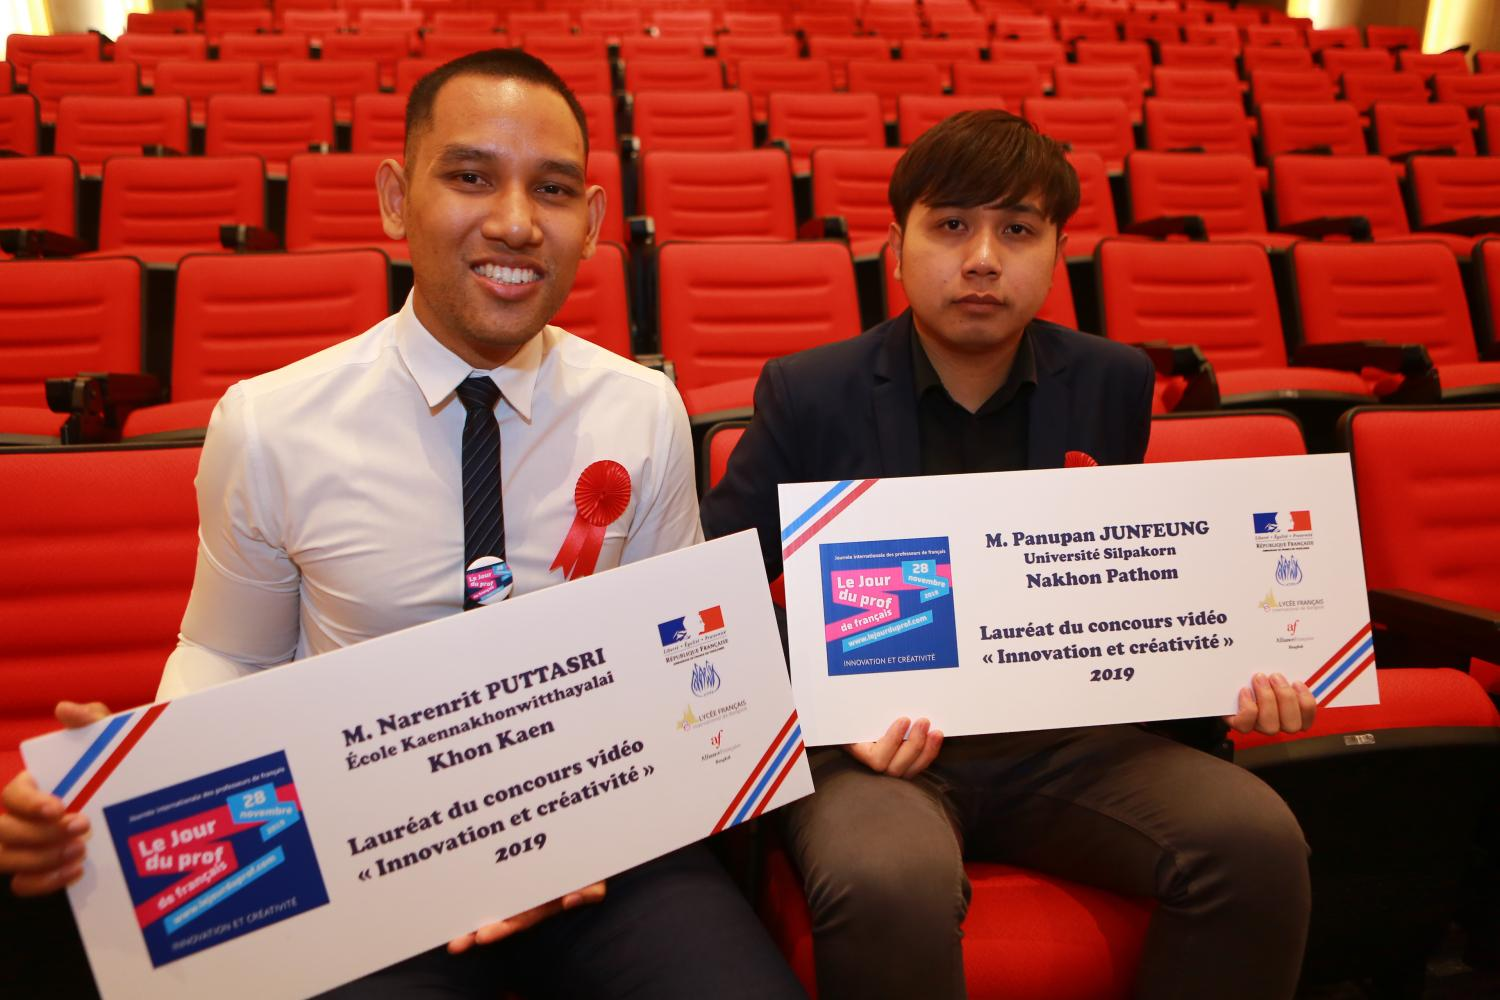 Narenrit Puttasri, a French teacher from Kaennakhon Witthayalai School in Khon Kaen, (left) and Panupan Junfeung, a French teacher from Silpakorn University, show their certificates received upon winning a national video contest on French teaching.(Photo by Somchai Poomlard)